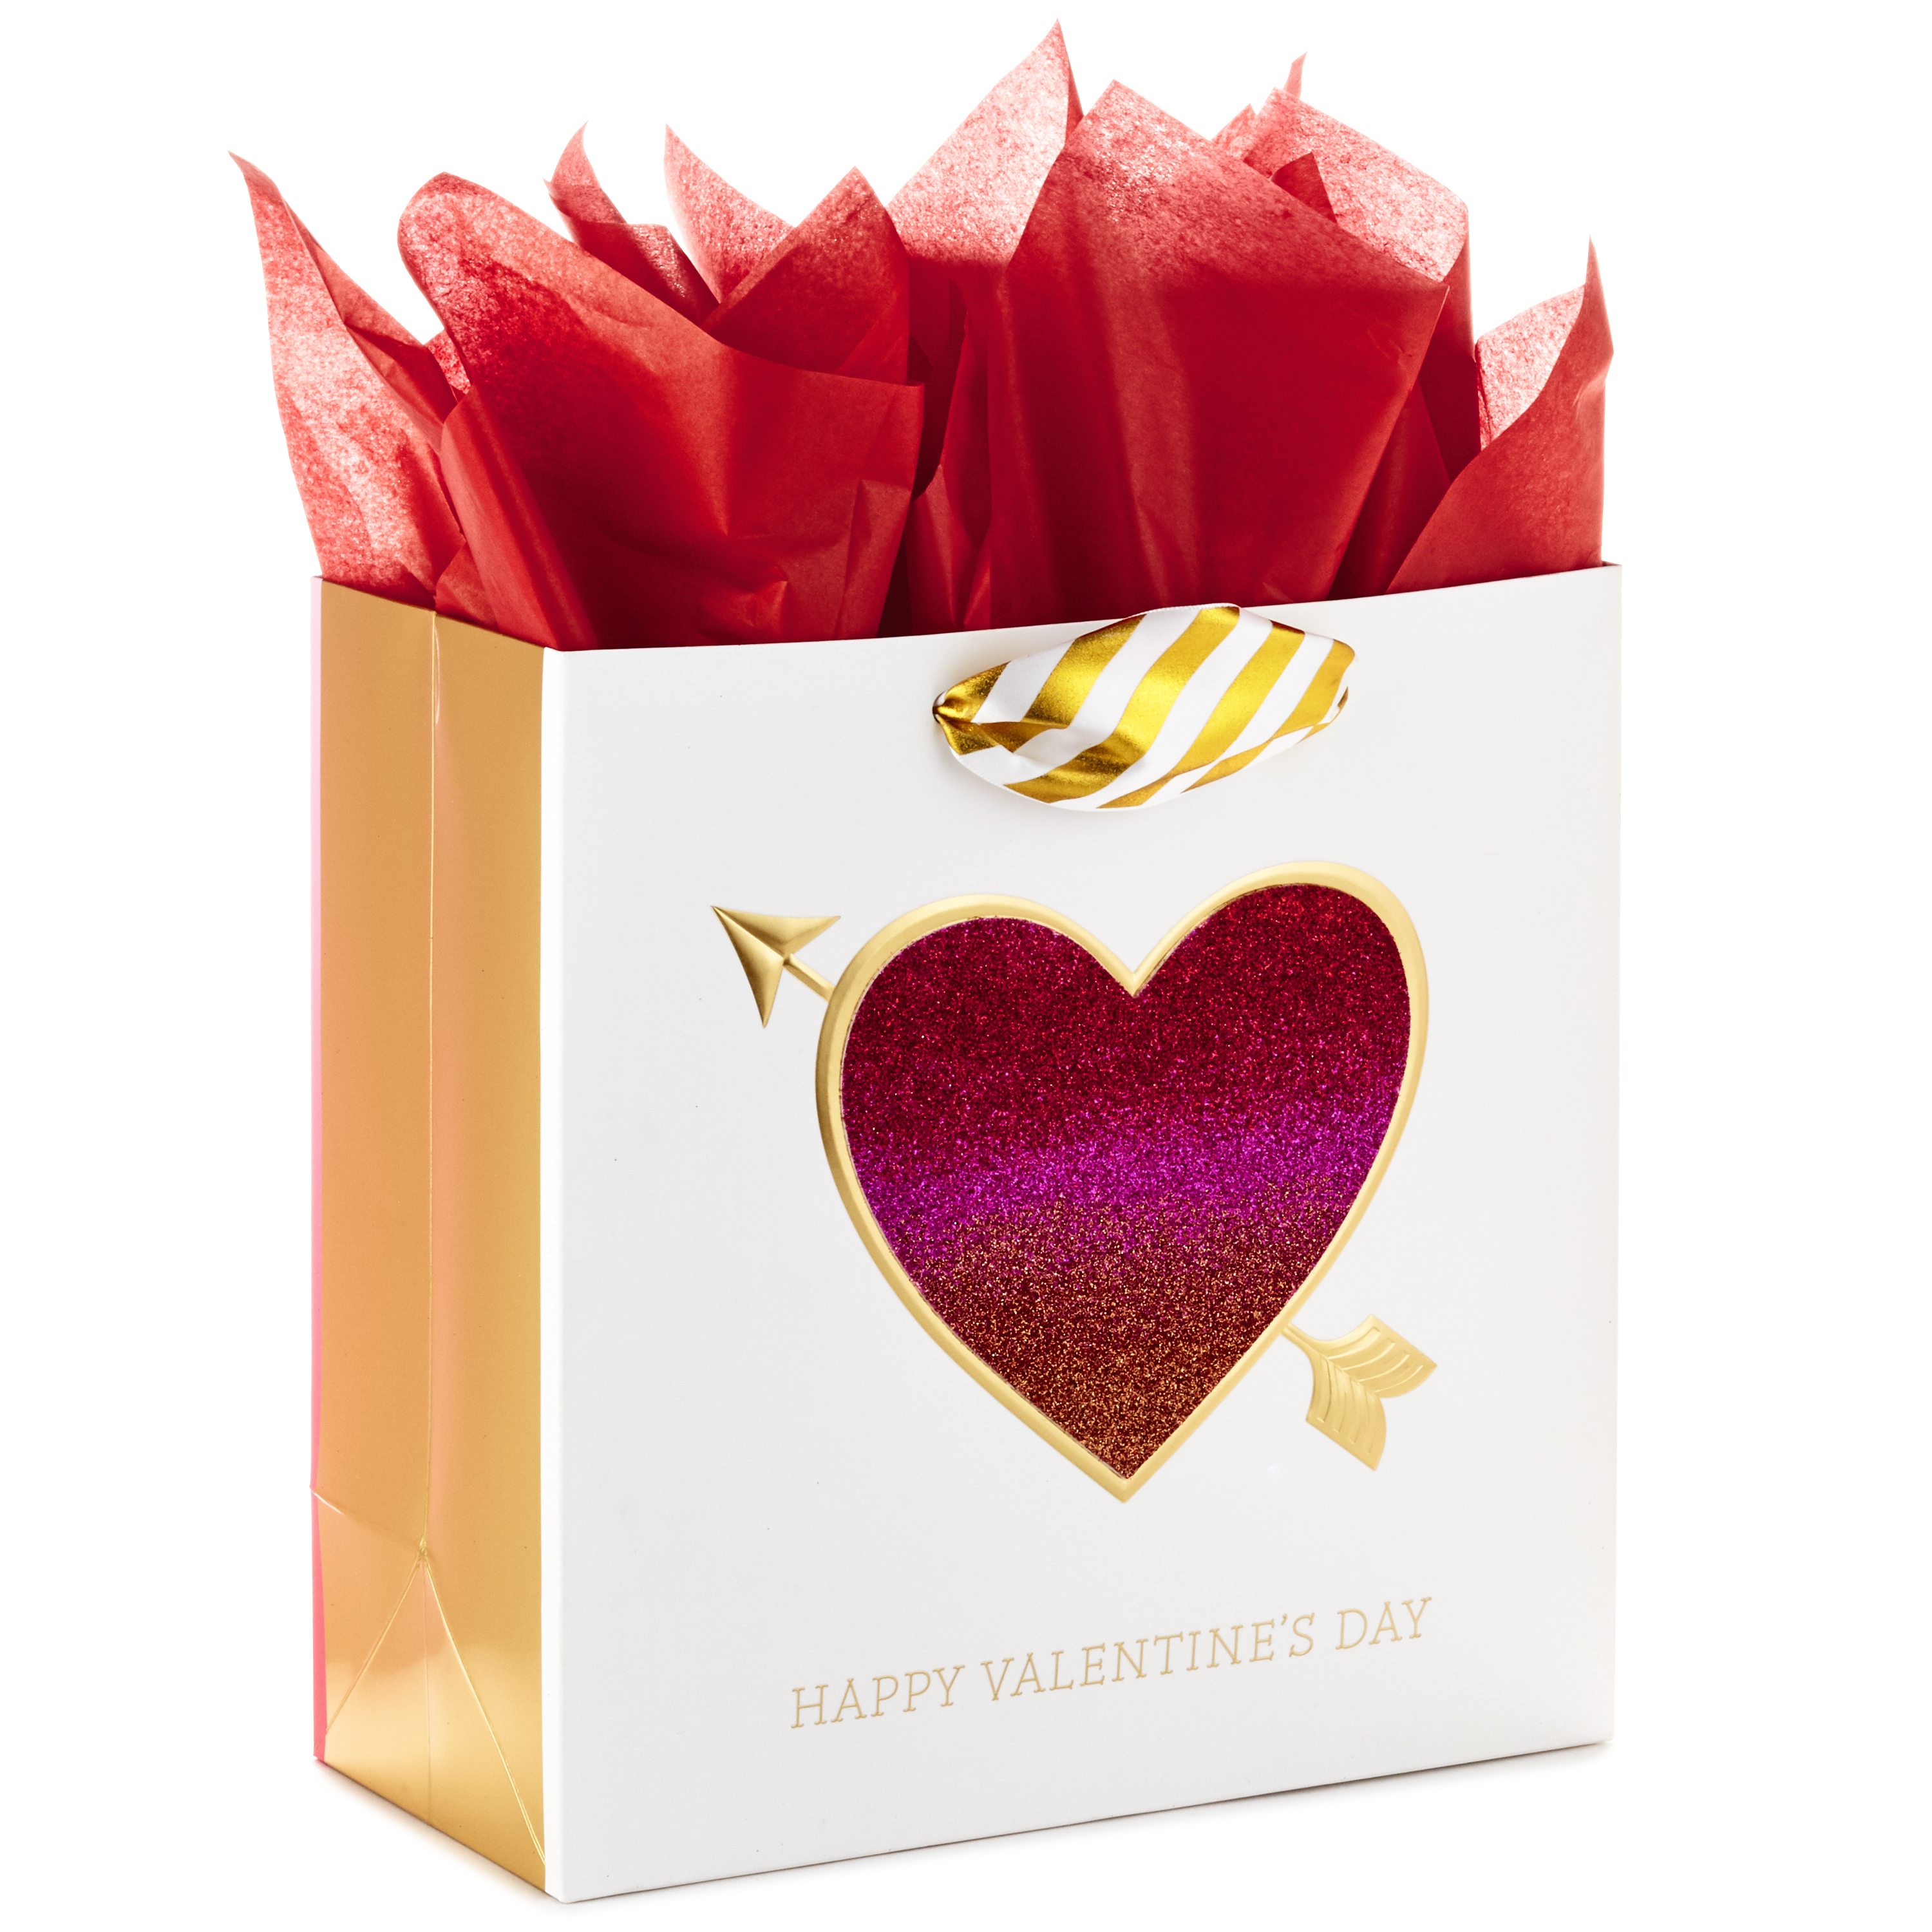 Hallmark Signature Large Valentine's Day Gift Bag with Tissue Paper (Glitter Heart)